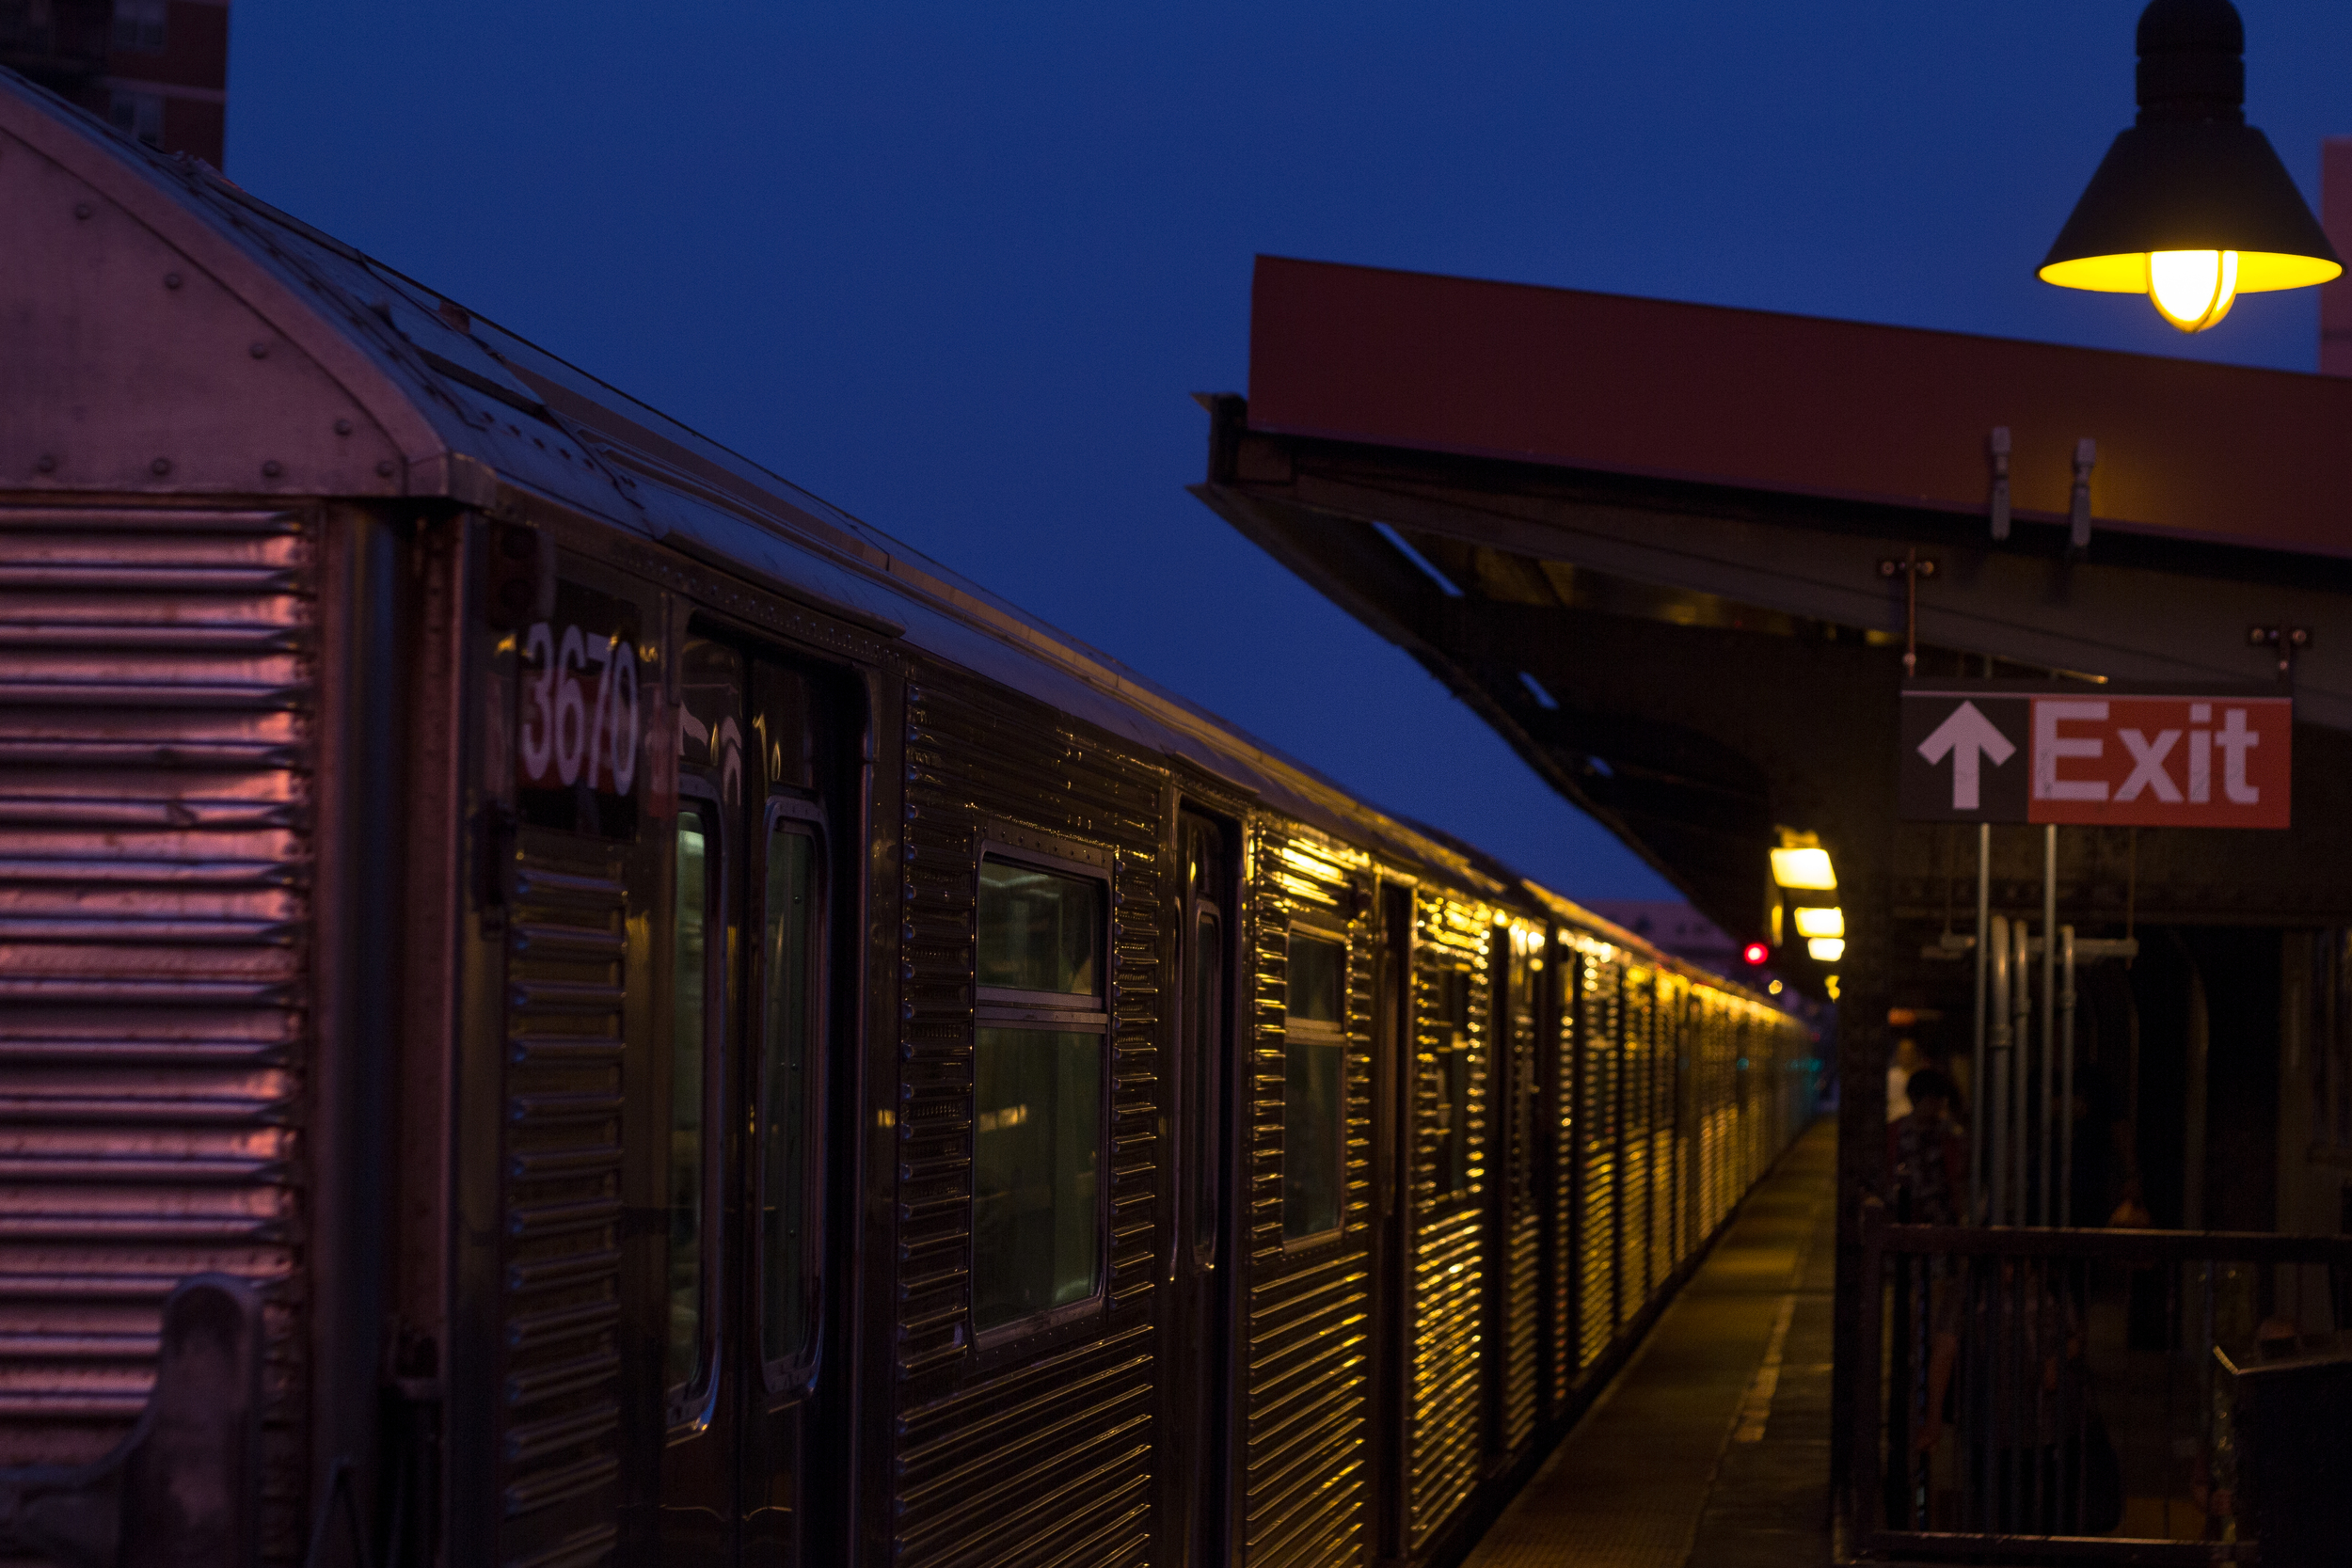 Lorimer Station at night